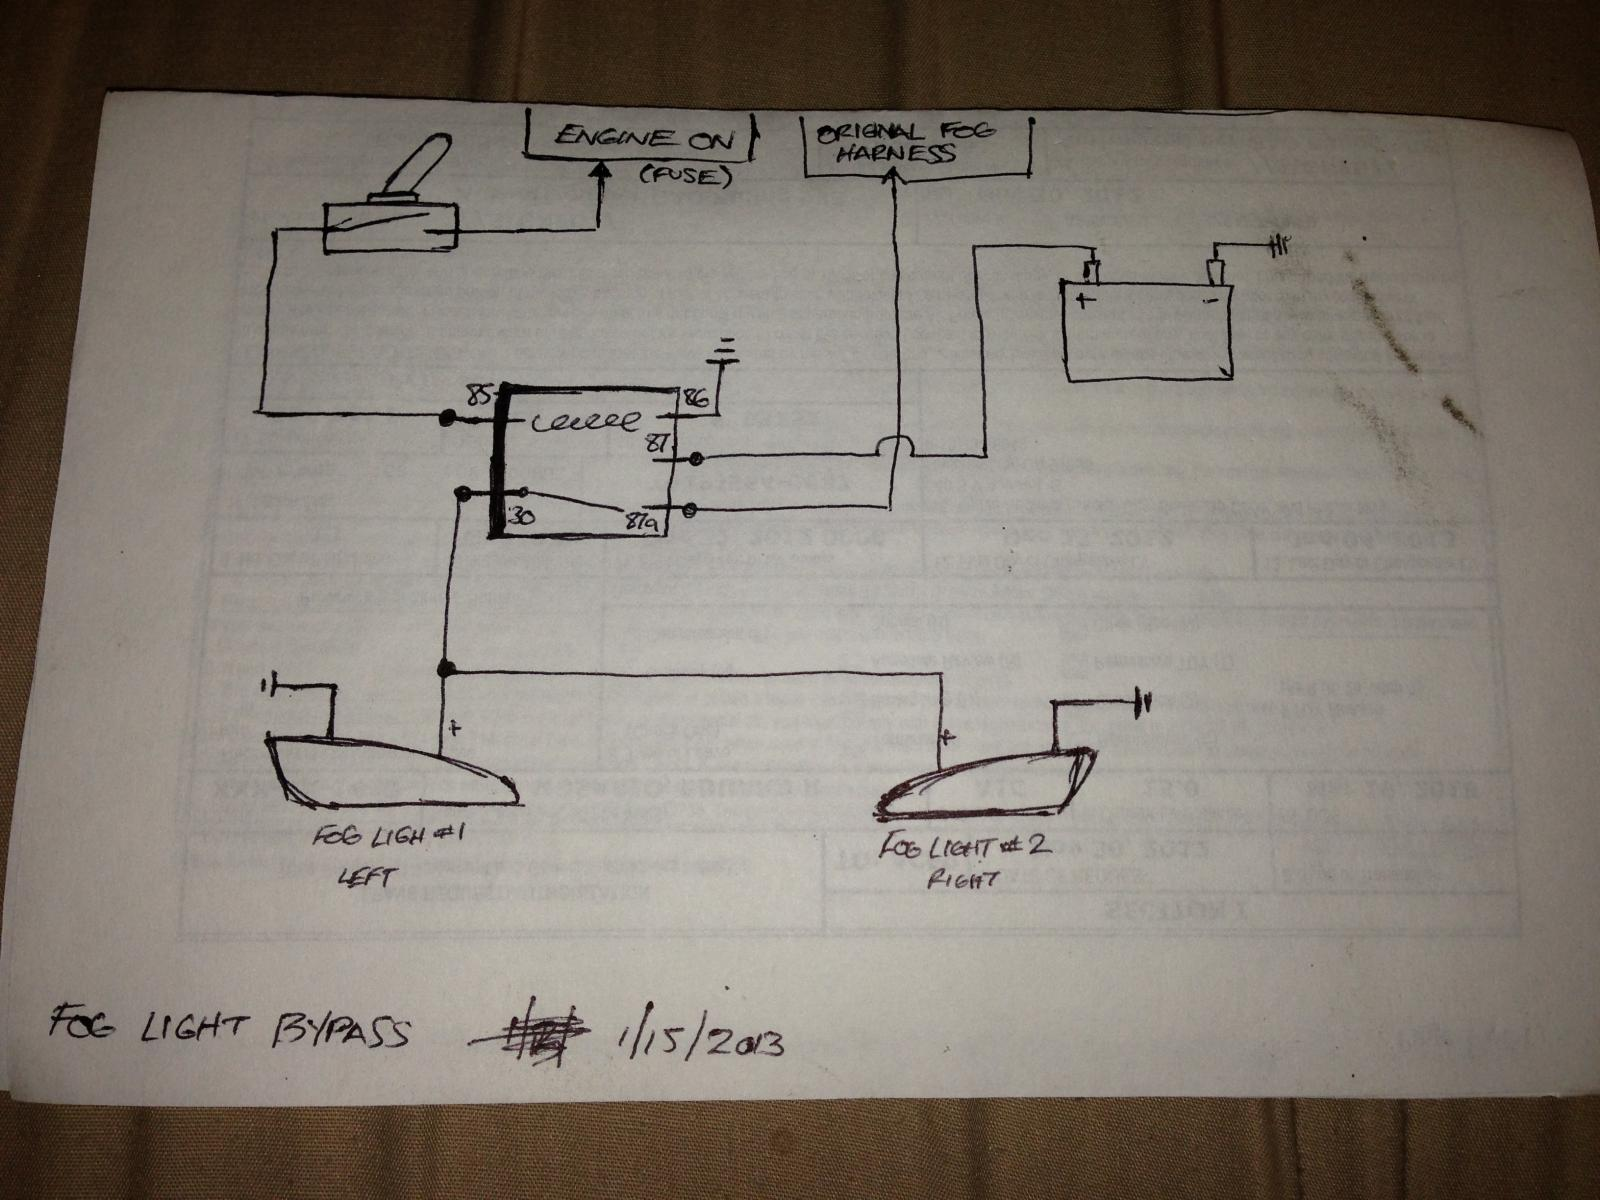 wiring diagram driving lights relay air conditioner capacitor simple to bypass foglights (works w/o headlights or w/ highbeams) - page 2